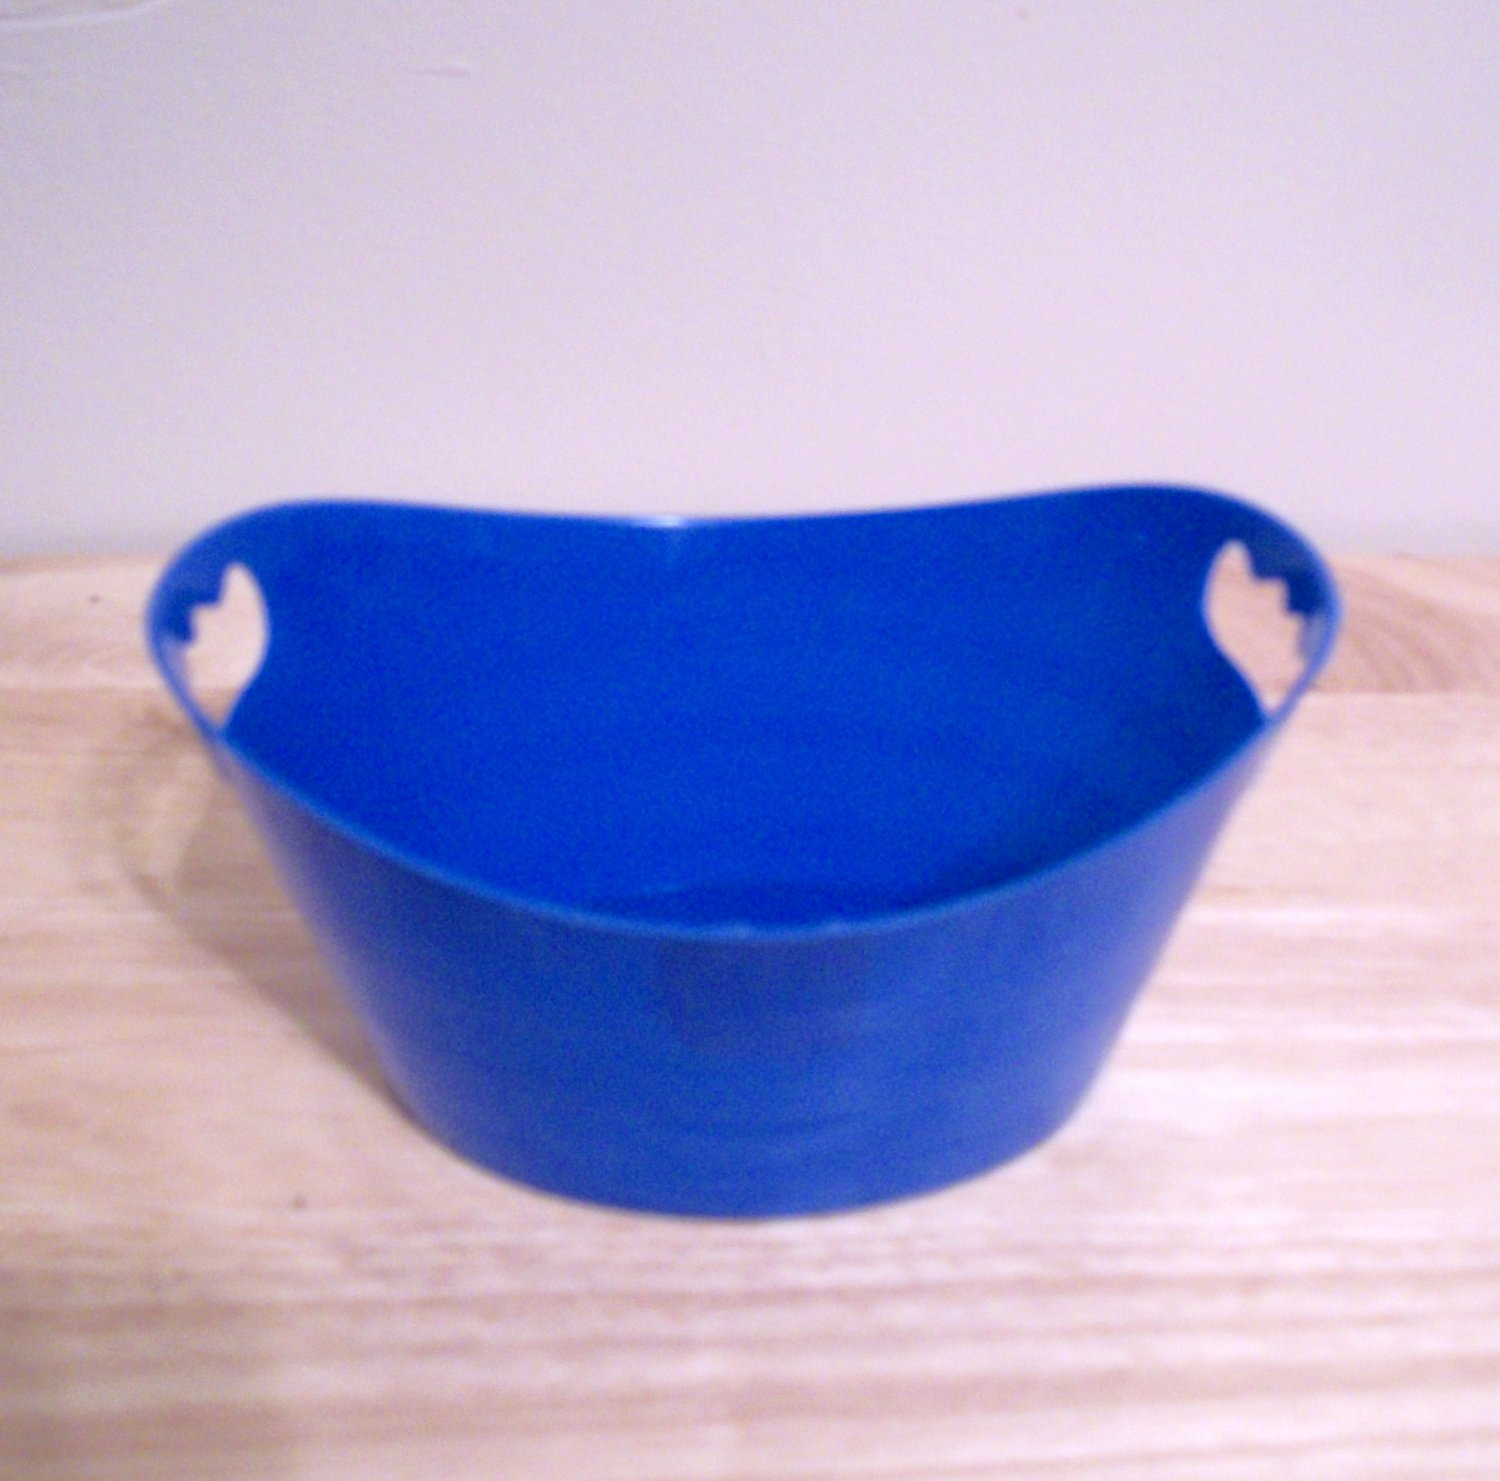 AMERICAN GIRL 18 INCH DOLL ACCESSORY-LAUNDRY BASKET